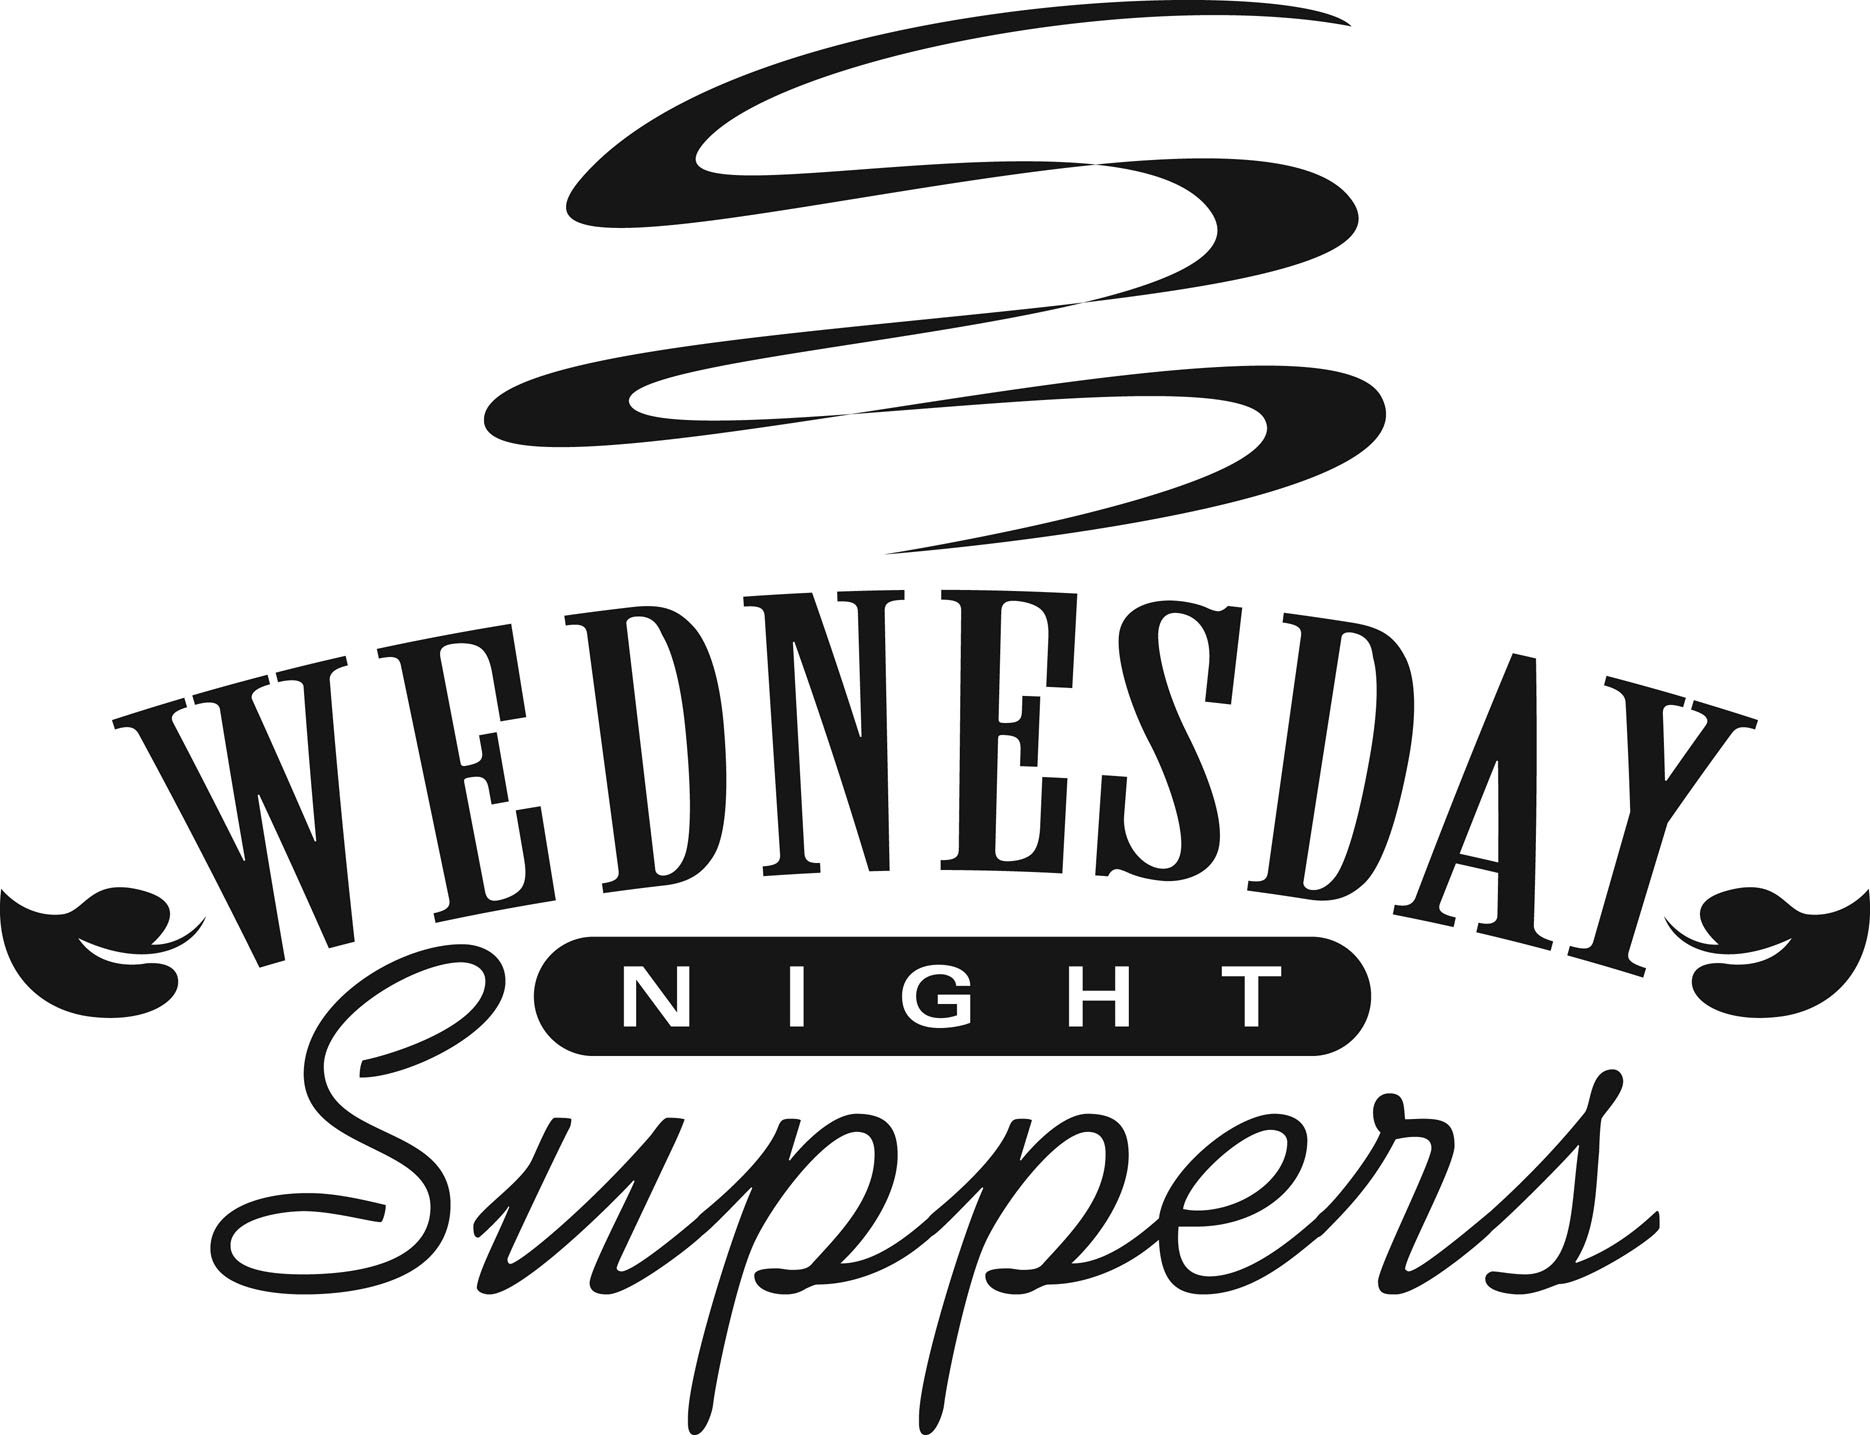 Wednesday night supper clipart vector transparent Wednesday Night Supper | Spring Branch Presbyterian Church ... vector transparent